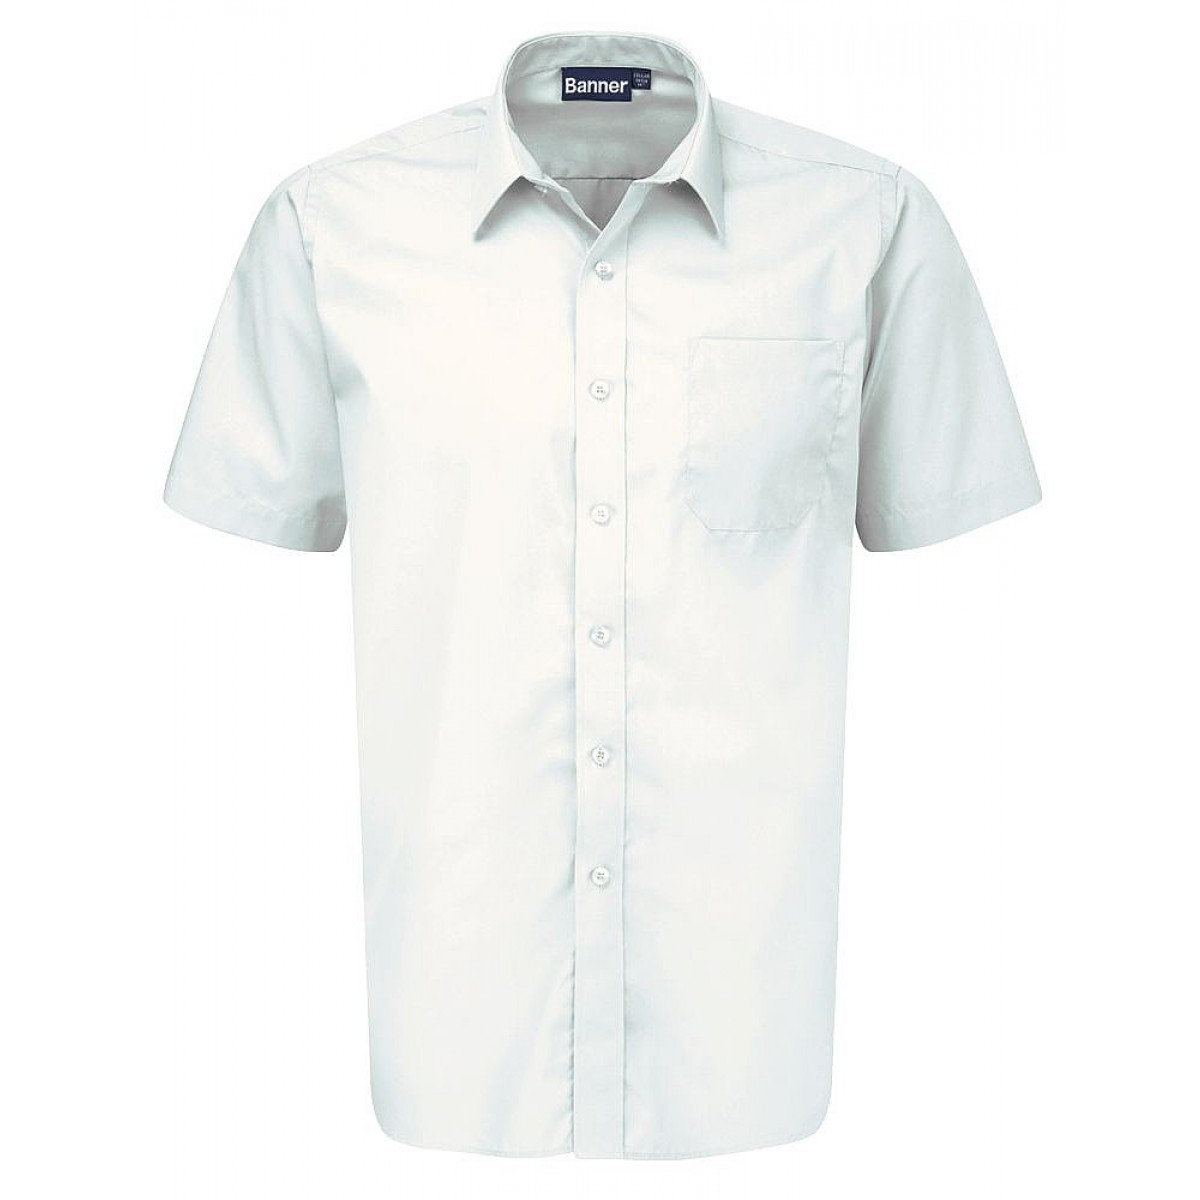 Boys School Shirts Short Sleeve